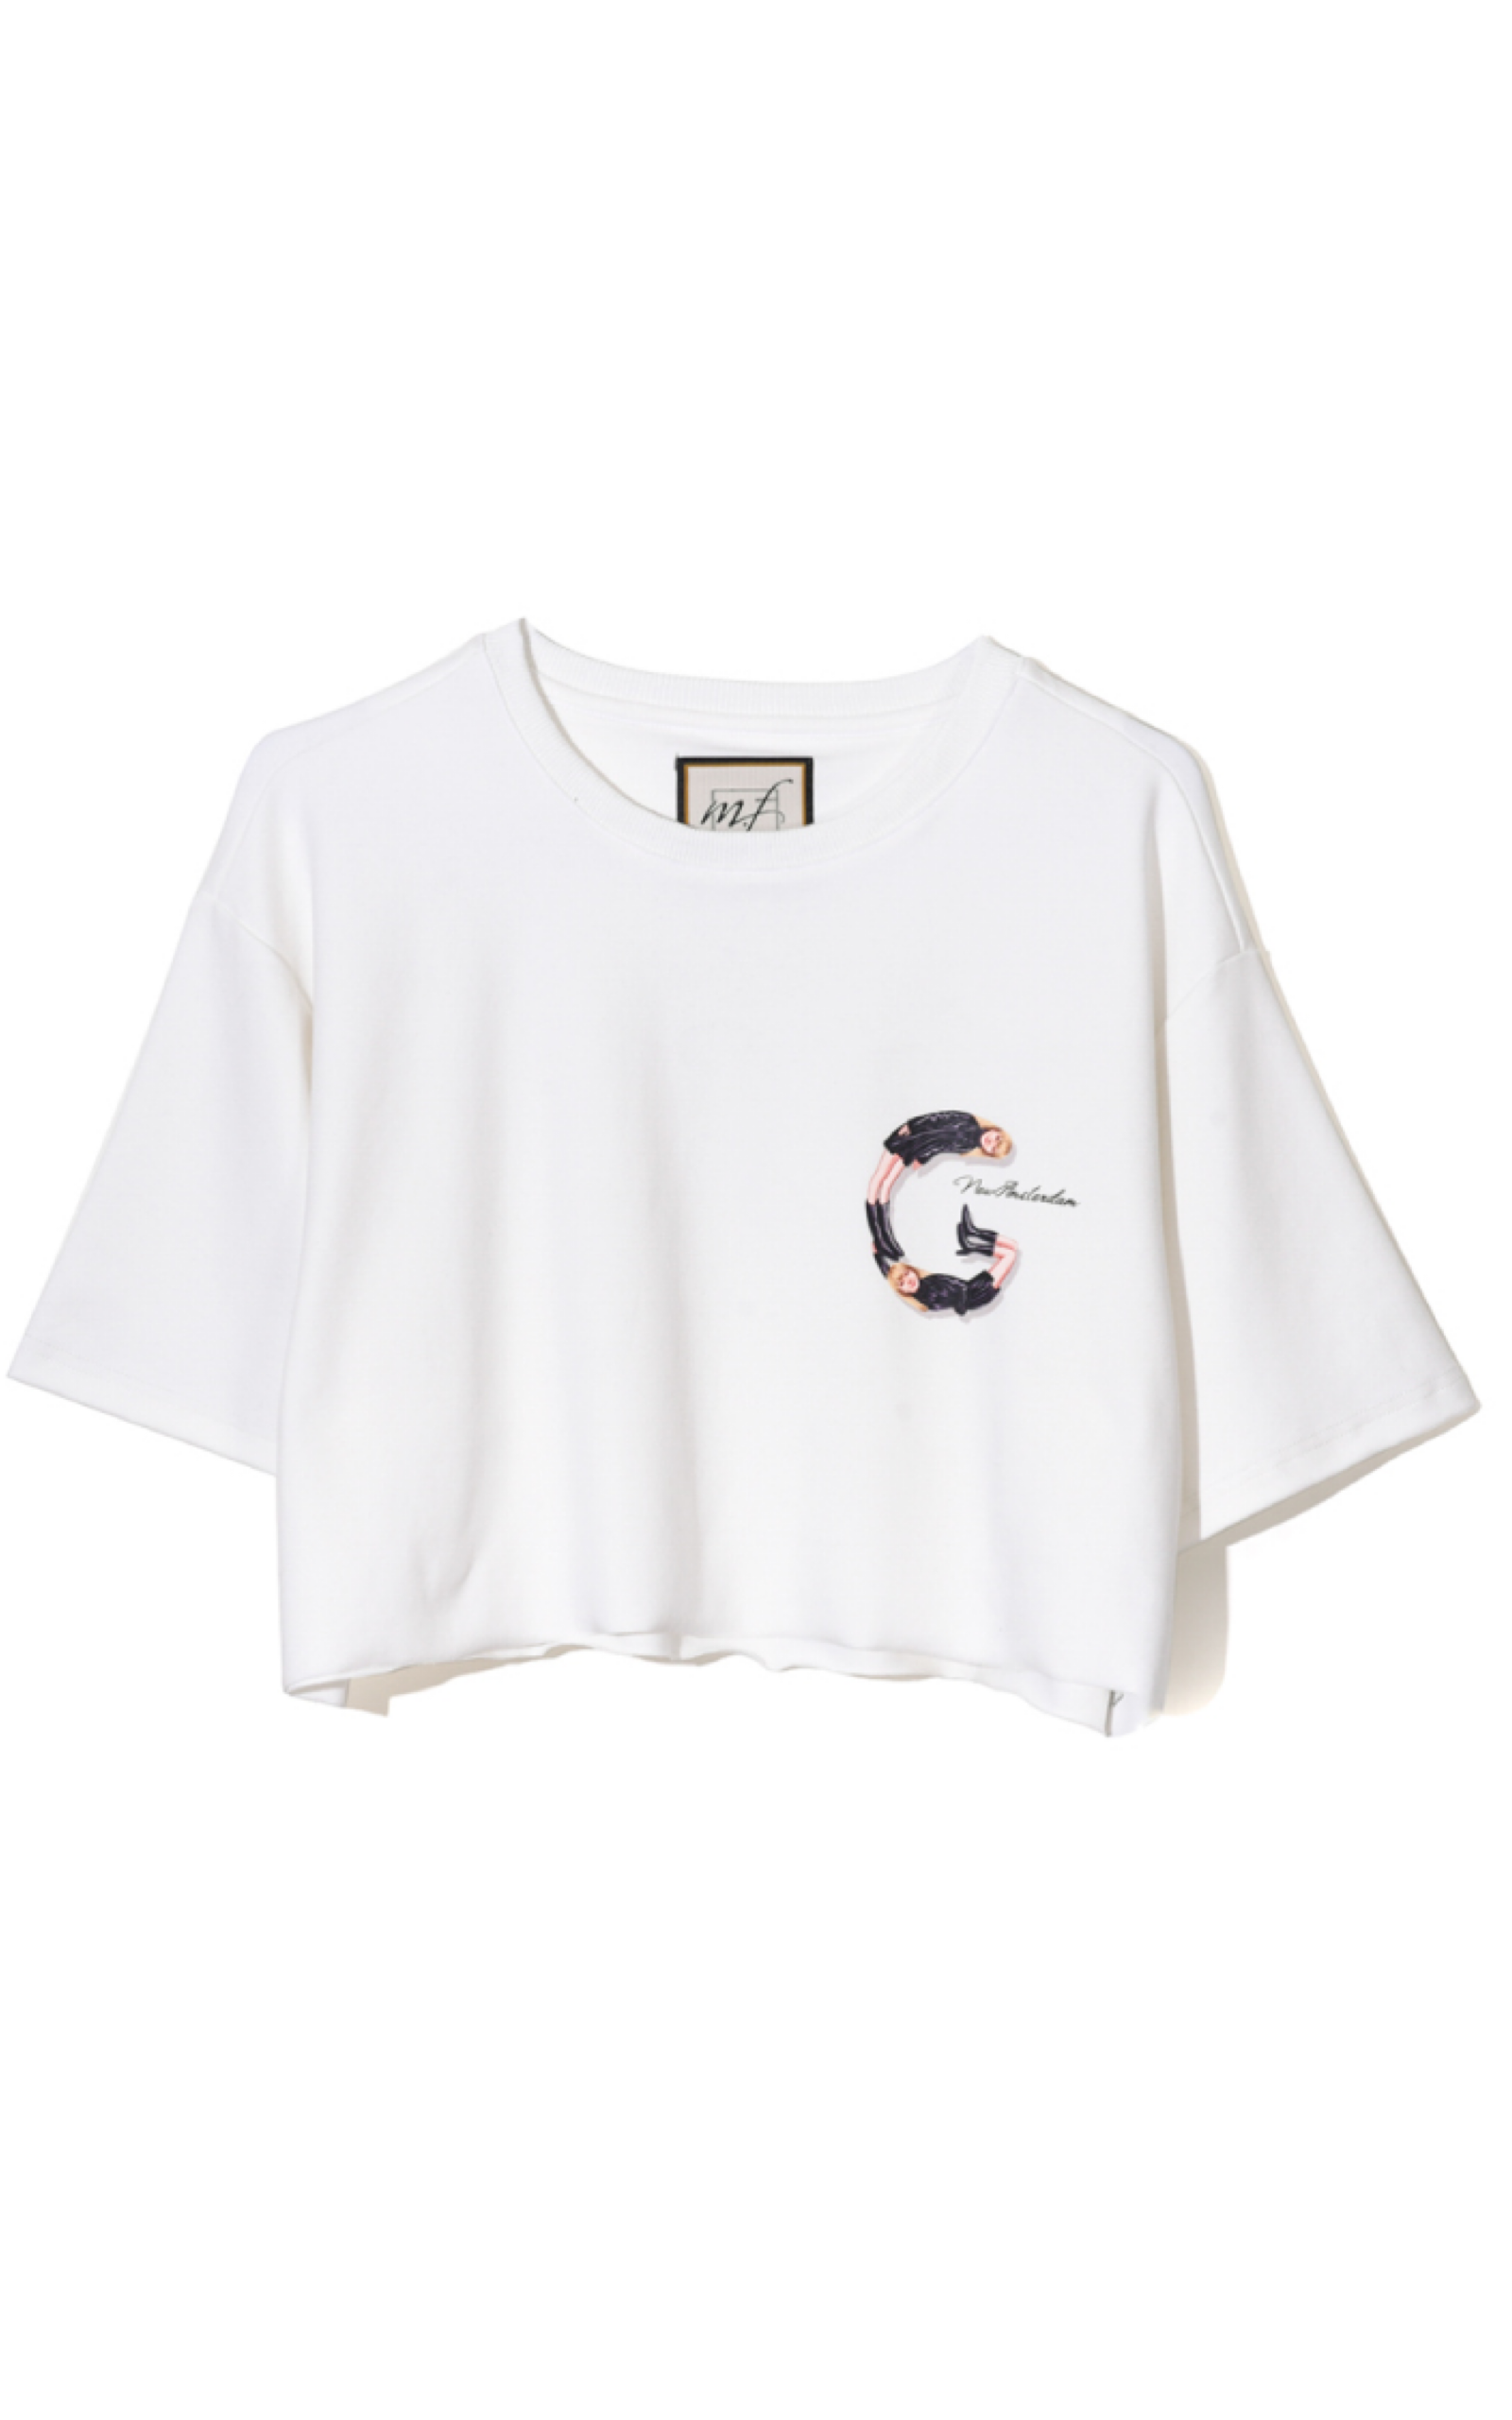 Grace Chow Crop Top